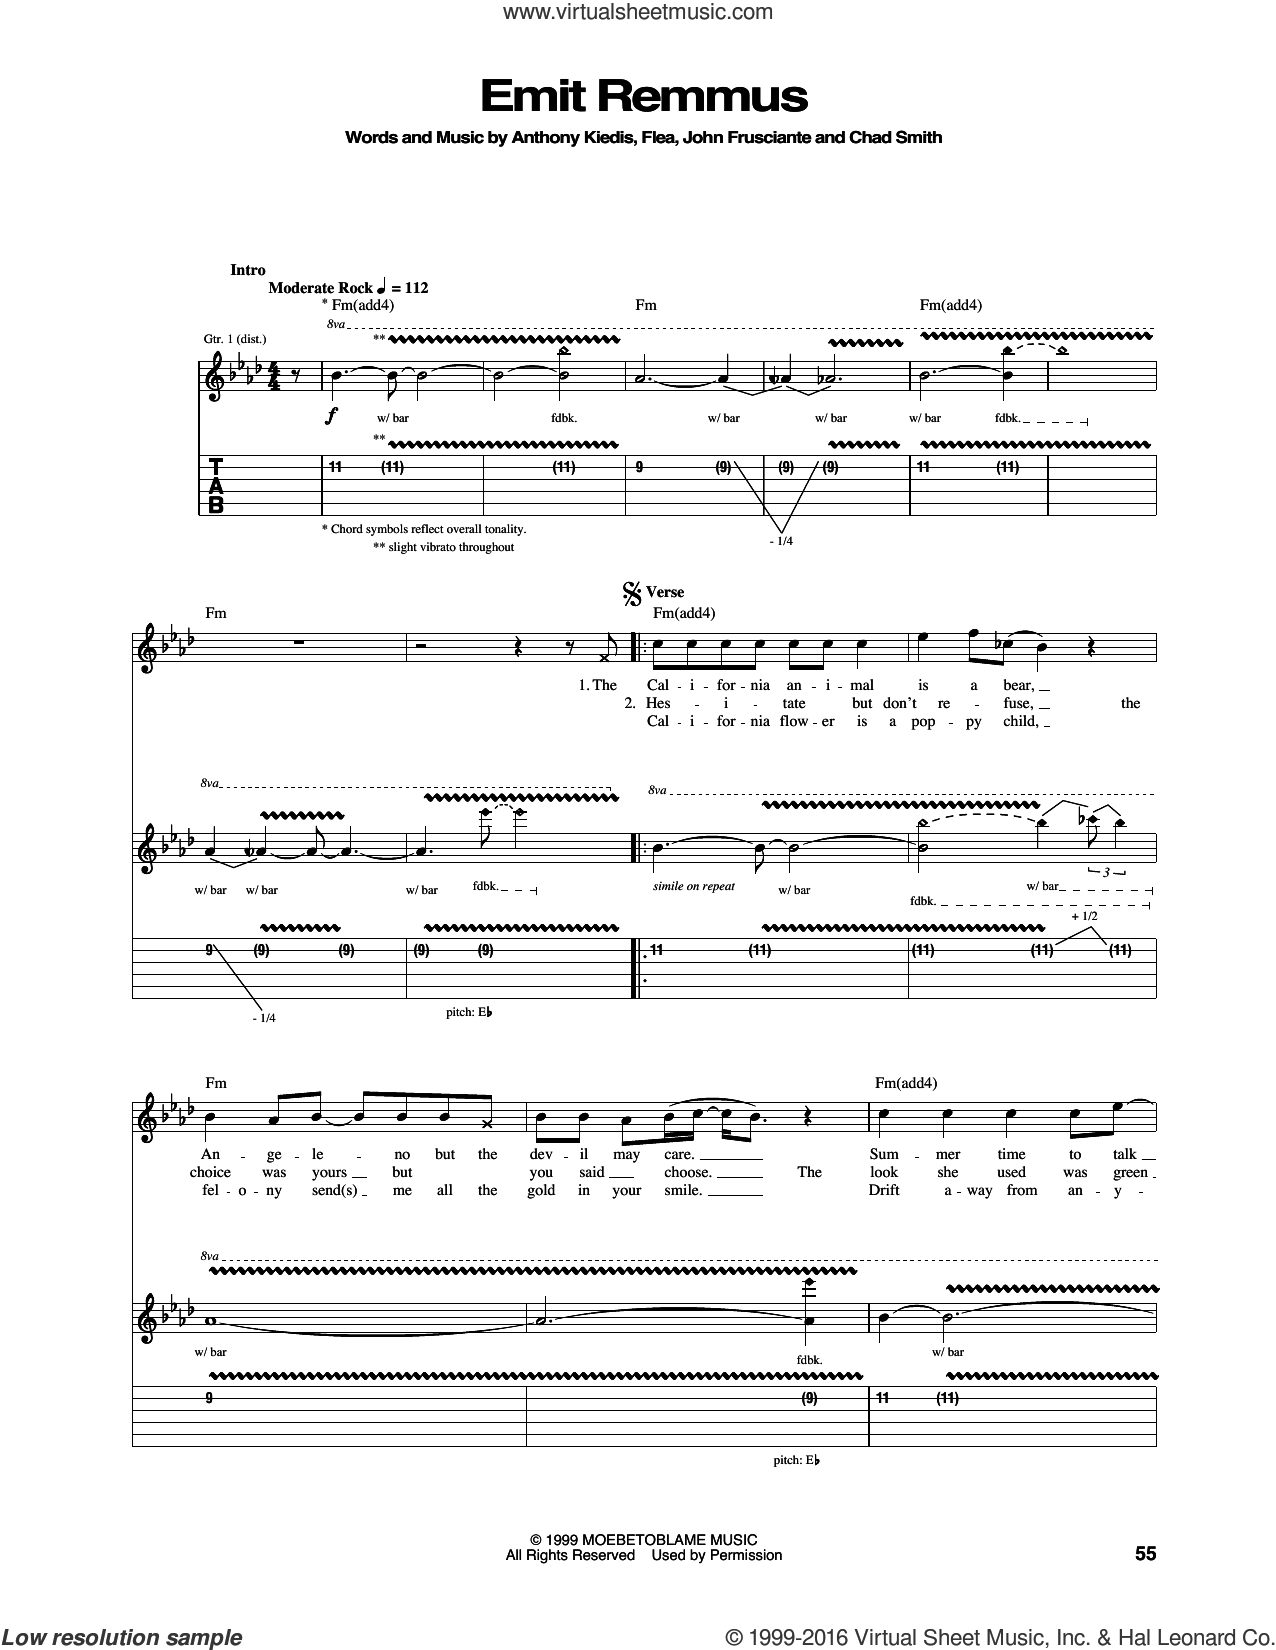 Emit Remmus sheet music for guitar (tablature) by Red Hot Chili Peppers, Anthony Kiedis, Chad Smith, Flea and John Frusciante, intermediate skill level